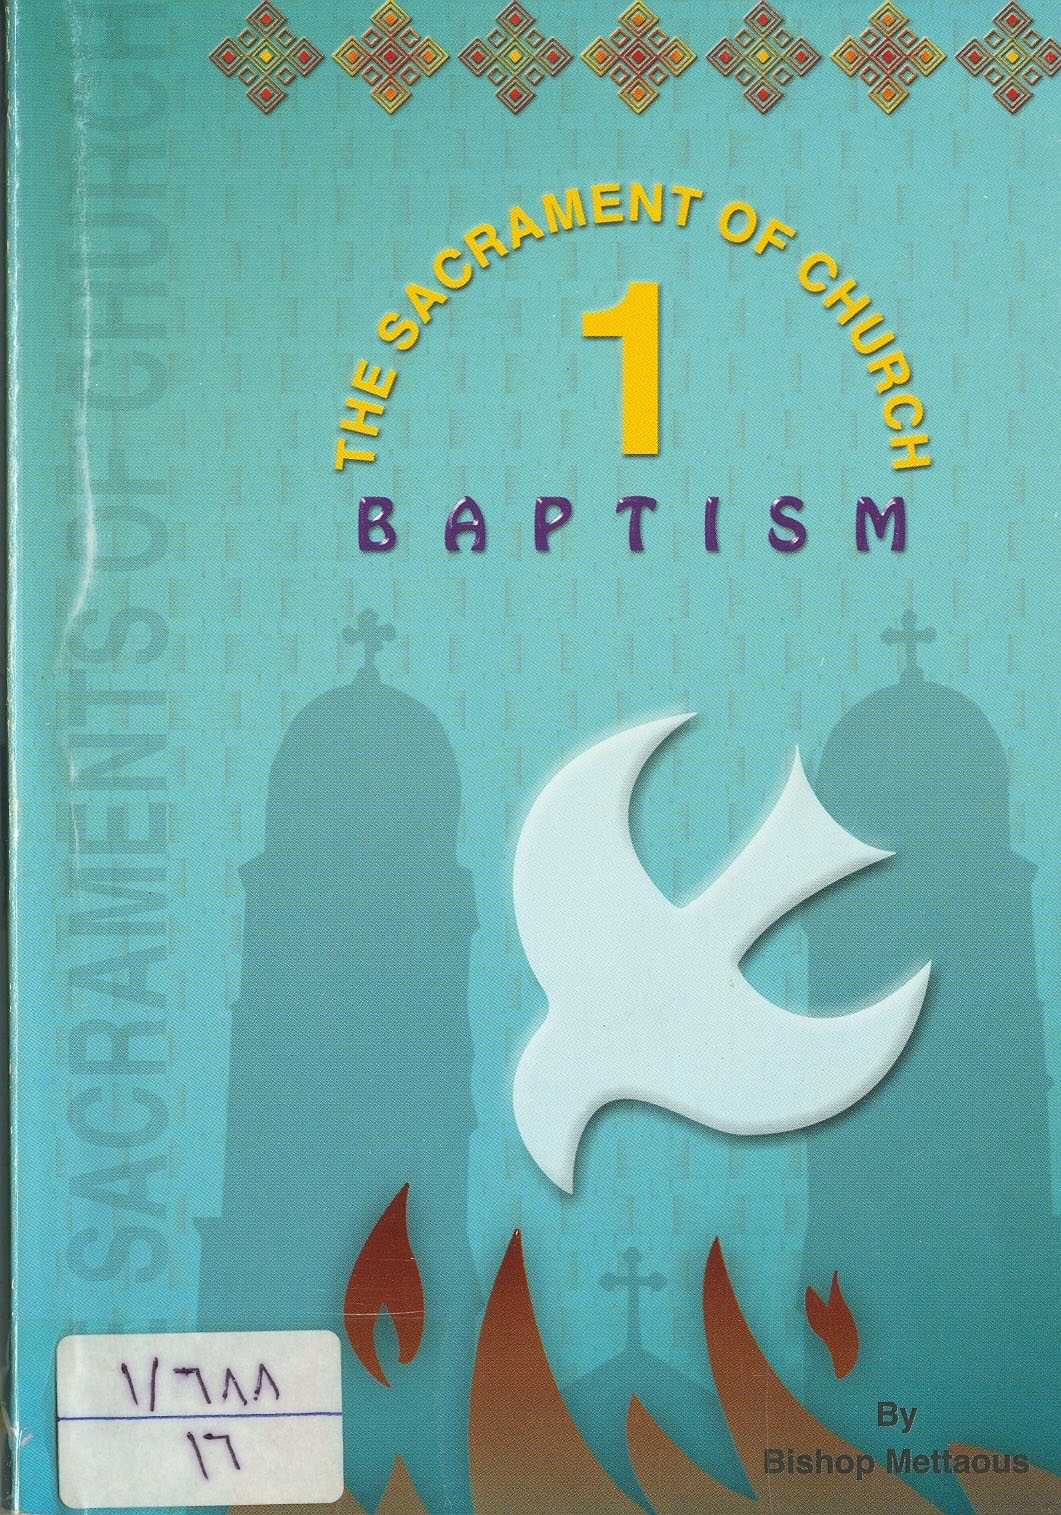 Cover of SACRAMENT OF BAPTISM